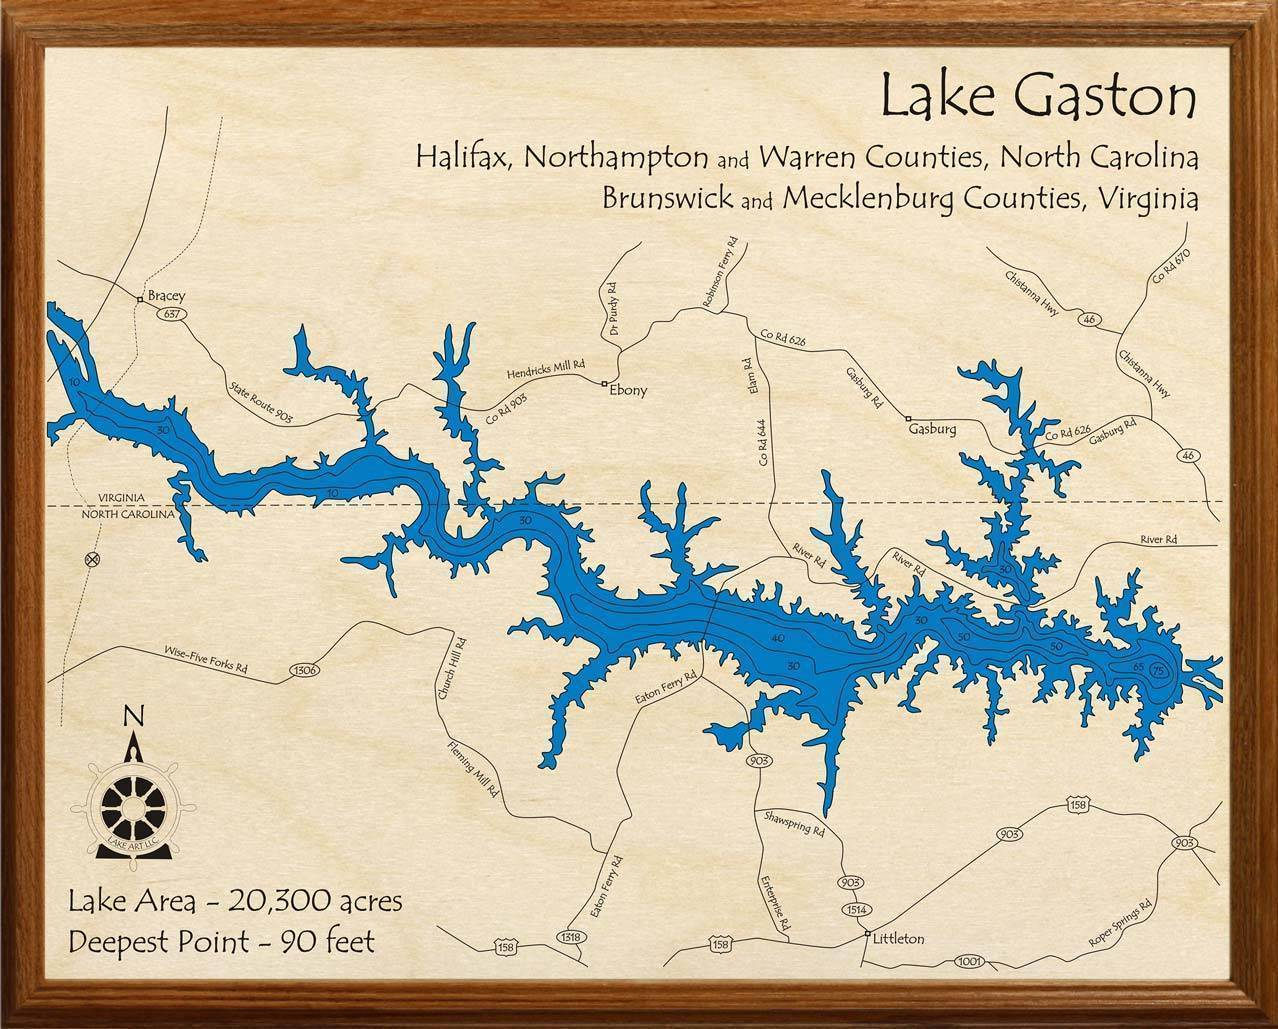 map of lake gaston Lake Gaston Lakehouse Lifestyle map of lake gaston